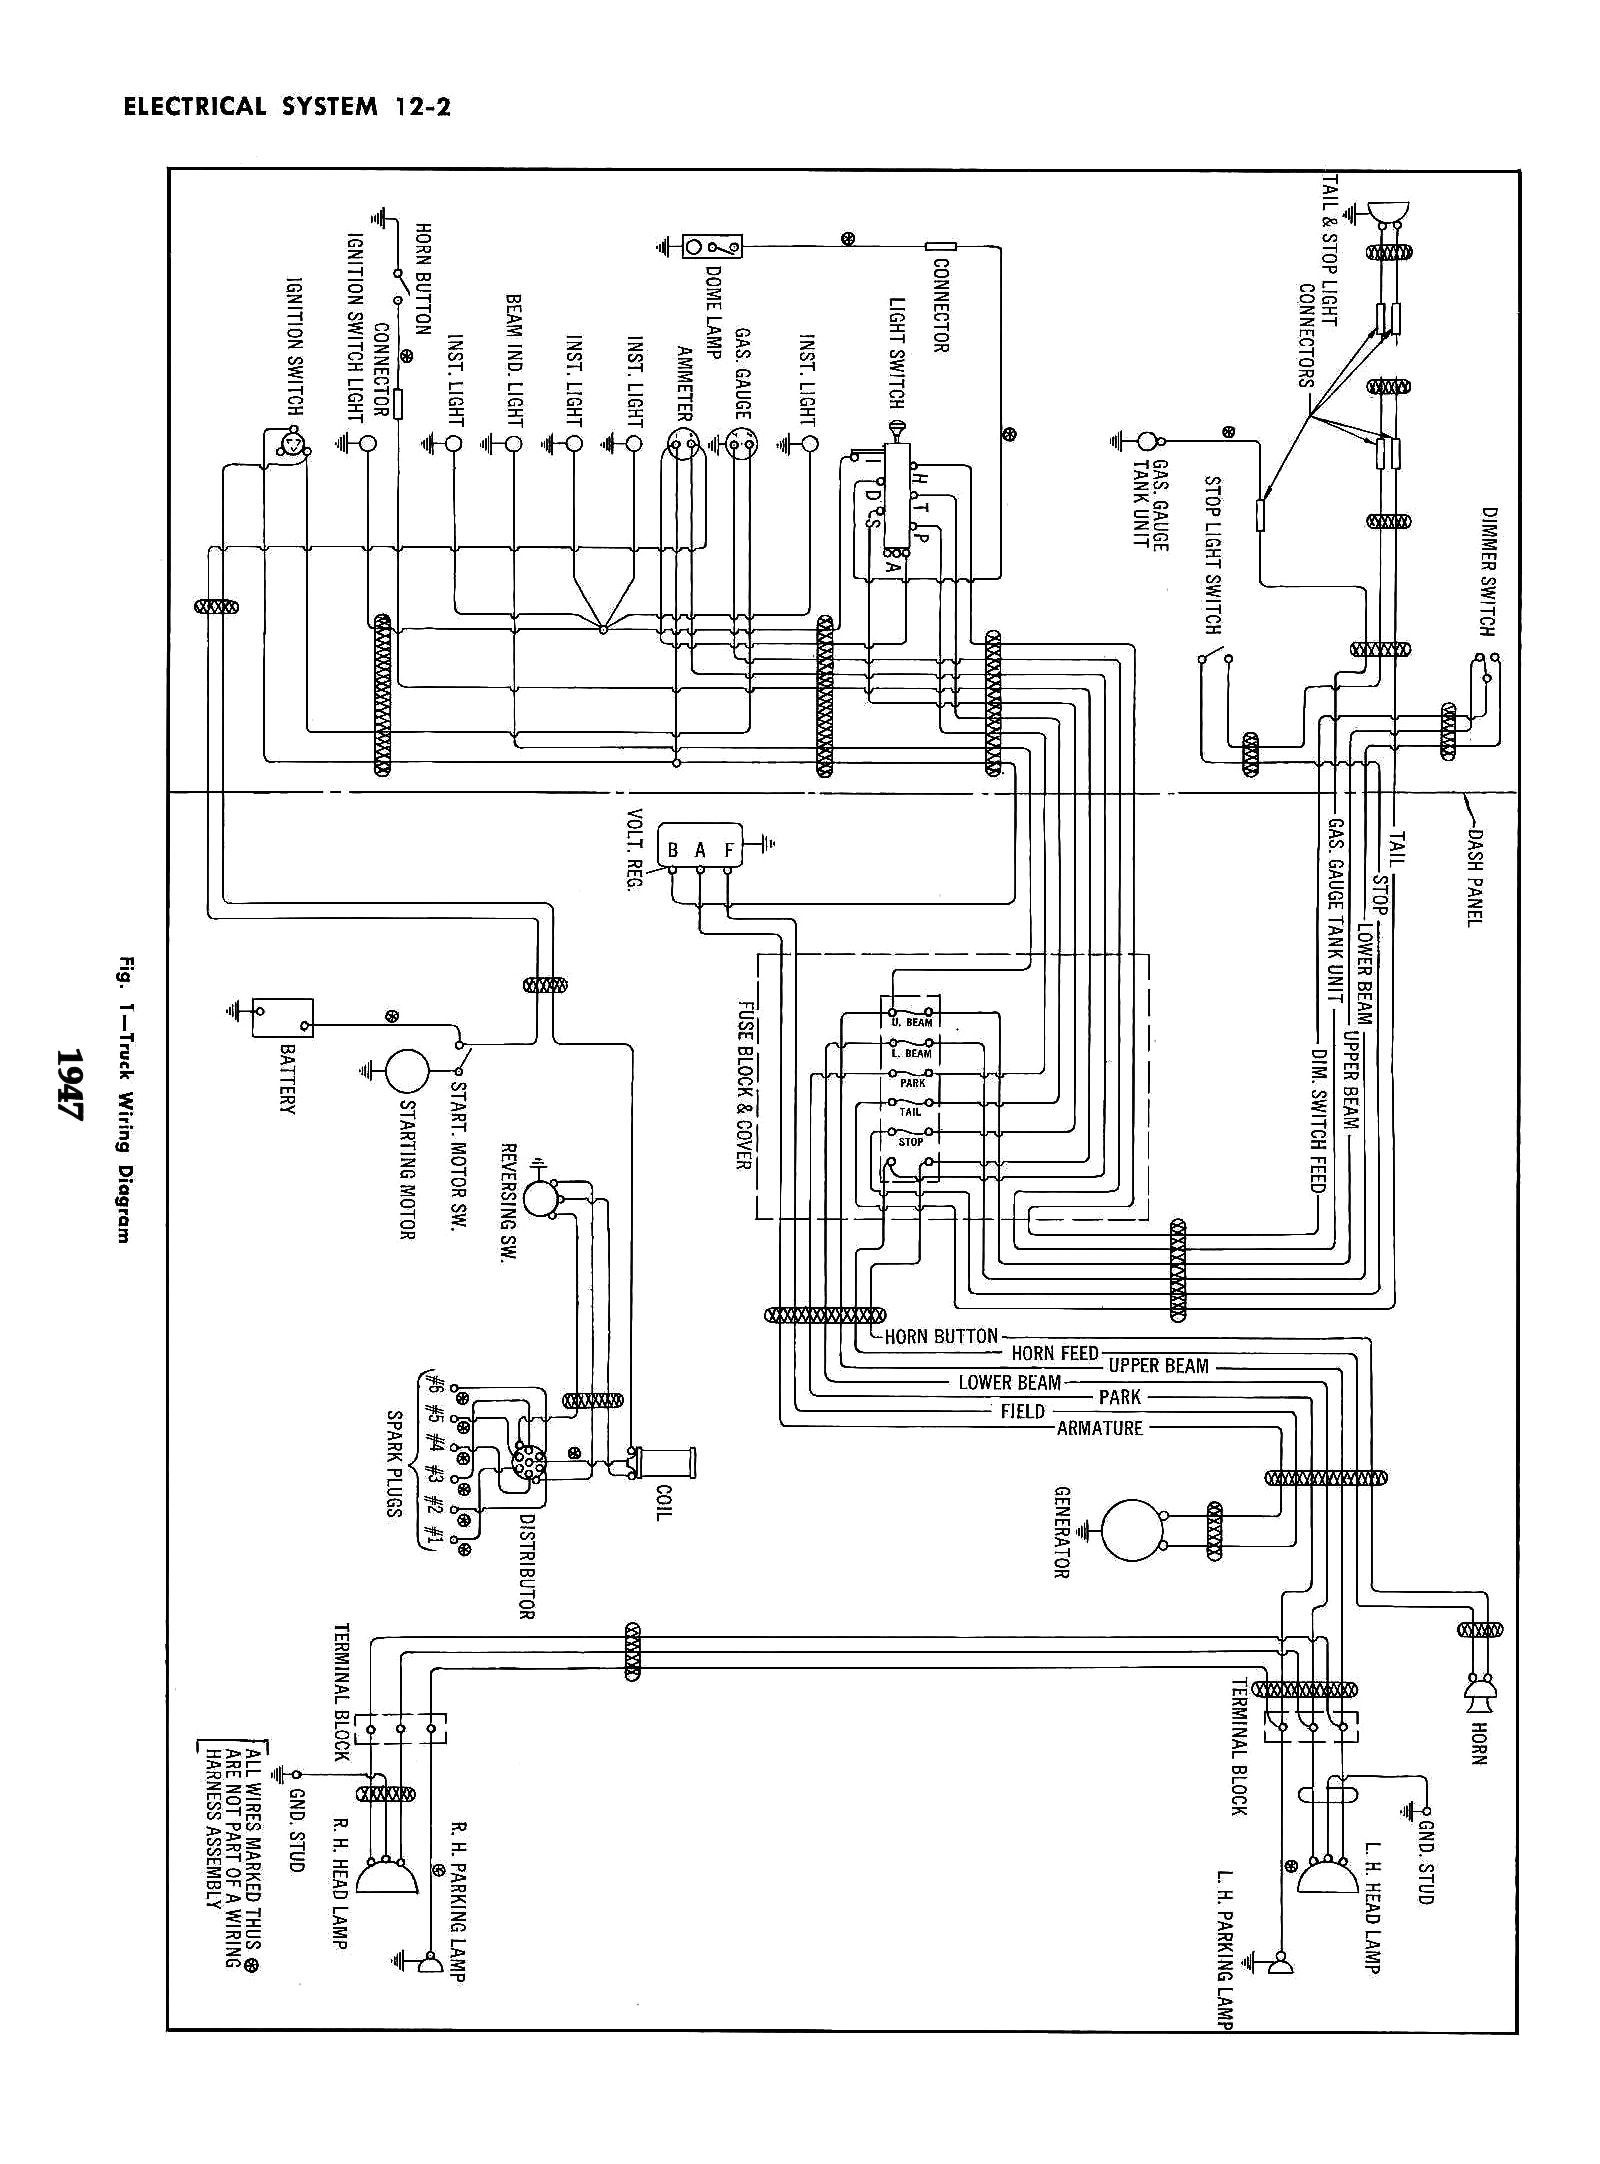 File Name Ford 8n Tractor Wiring Harnes Diagram